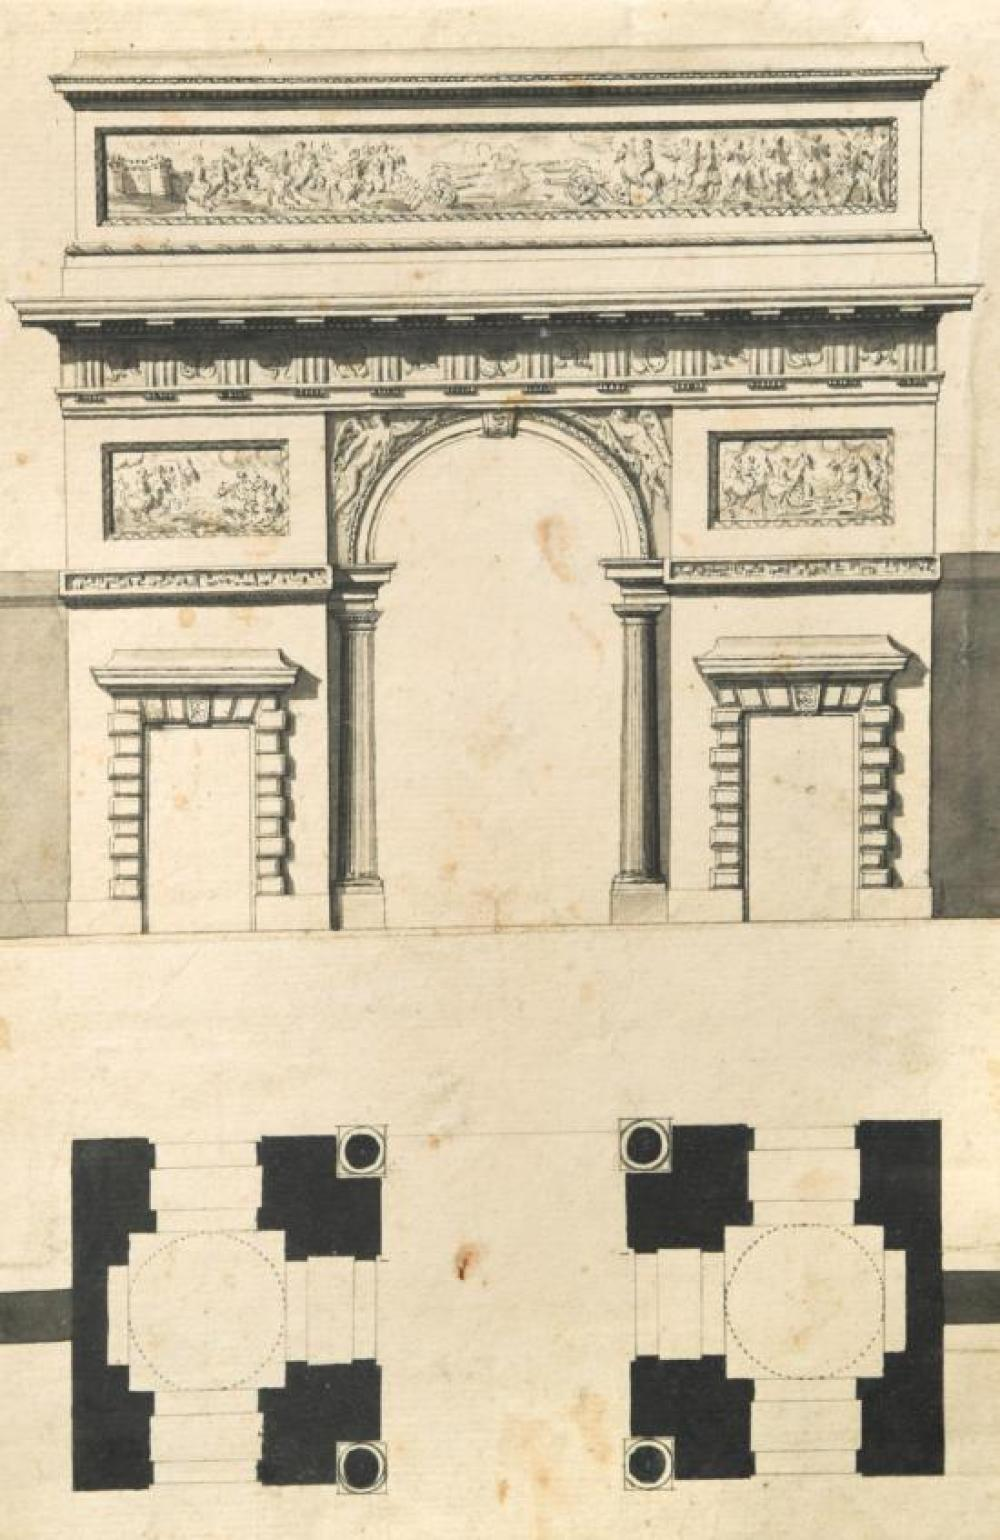 French School, 18th Century Study of a Triumphal Arch - an architectural design and elevation, with reliefs of military scenes and i...